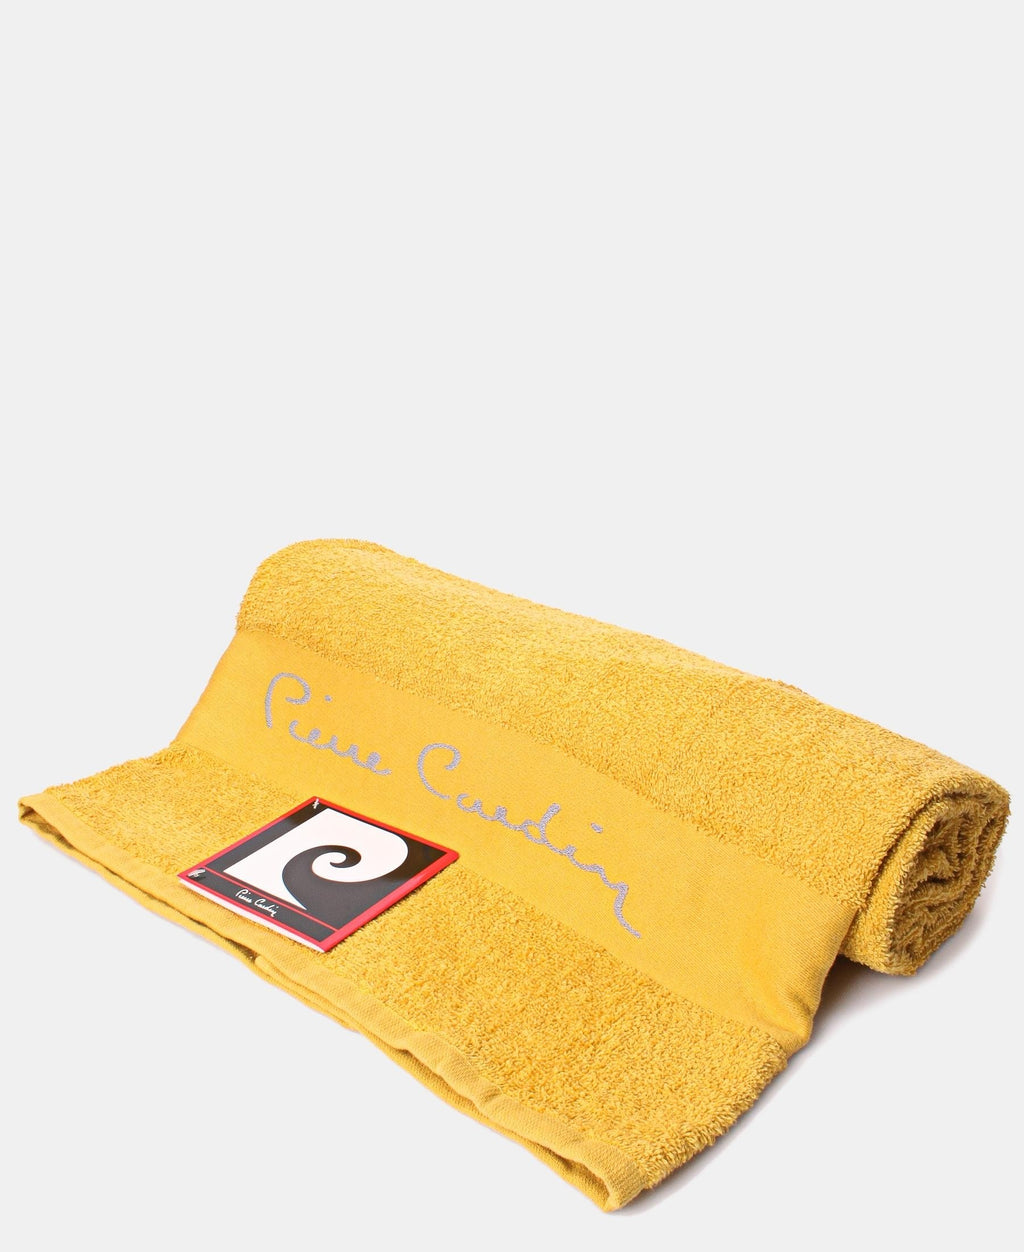 85X150cm Jacquard Border Bath Sheet - Mustard